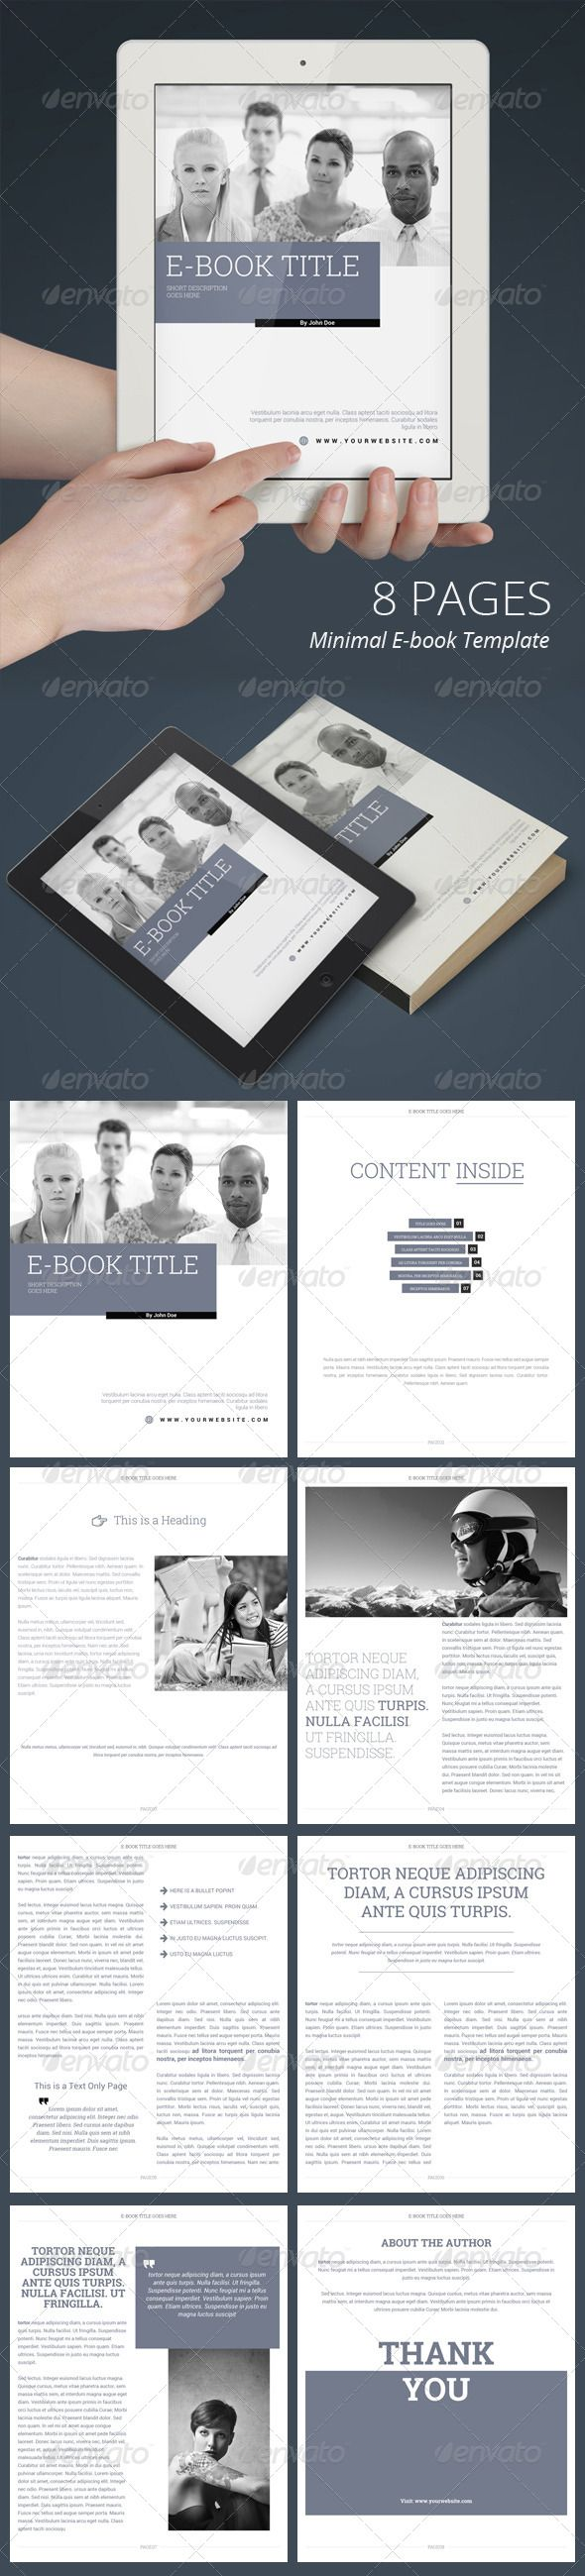 Magnificent 1 2 3 Nu Opgaver Kapitel Resume Thin 1 Hexagon Template Regular 1 Inch Button Template 1 Year Experience Resume Format For Net Developer Youthful 10 Minute Resume Builder Purple10 Off Coupon Template 15 Best Images About PDF EBook Design On Pinterest | Spotlight ..